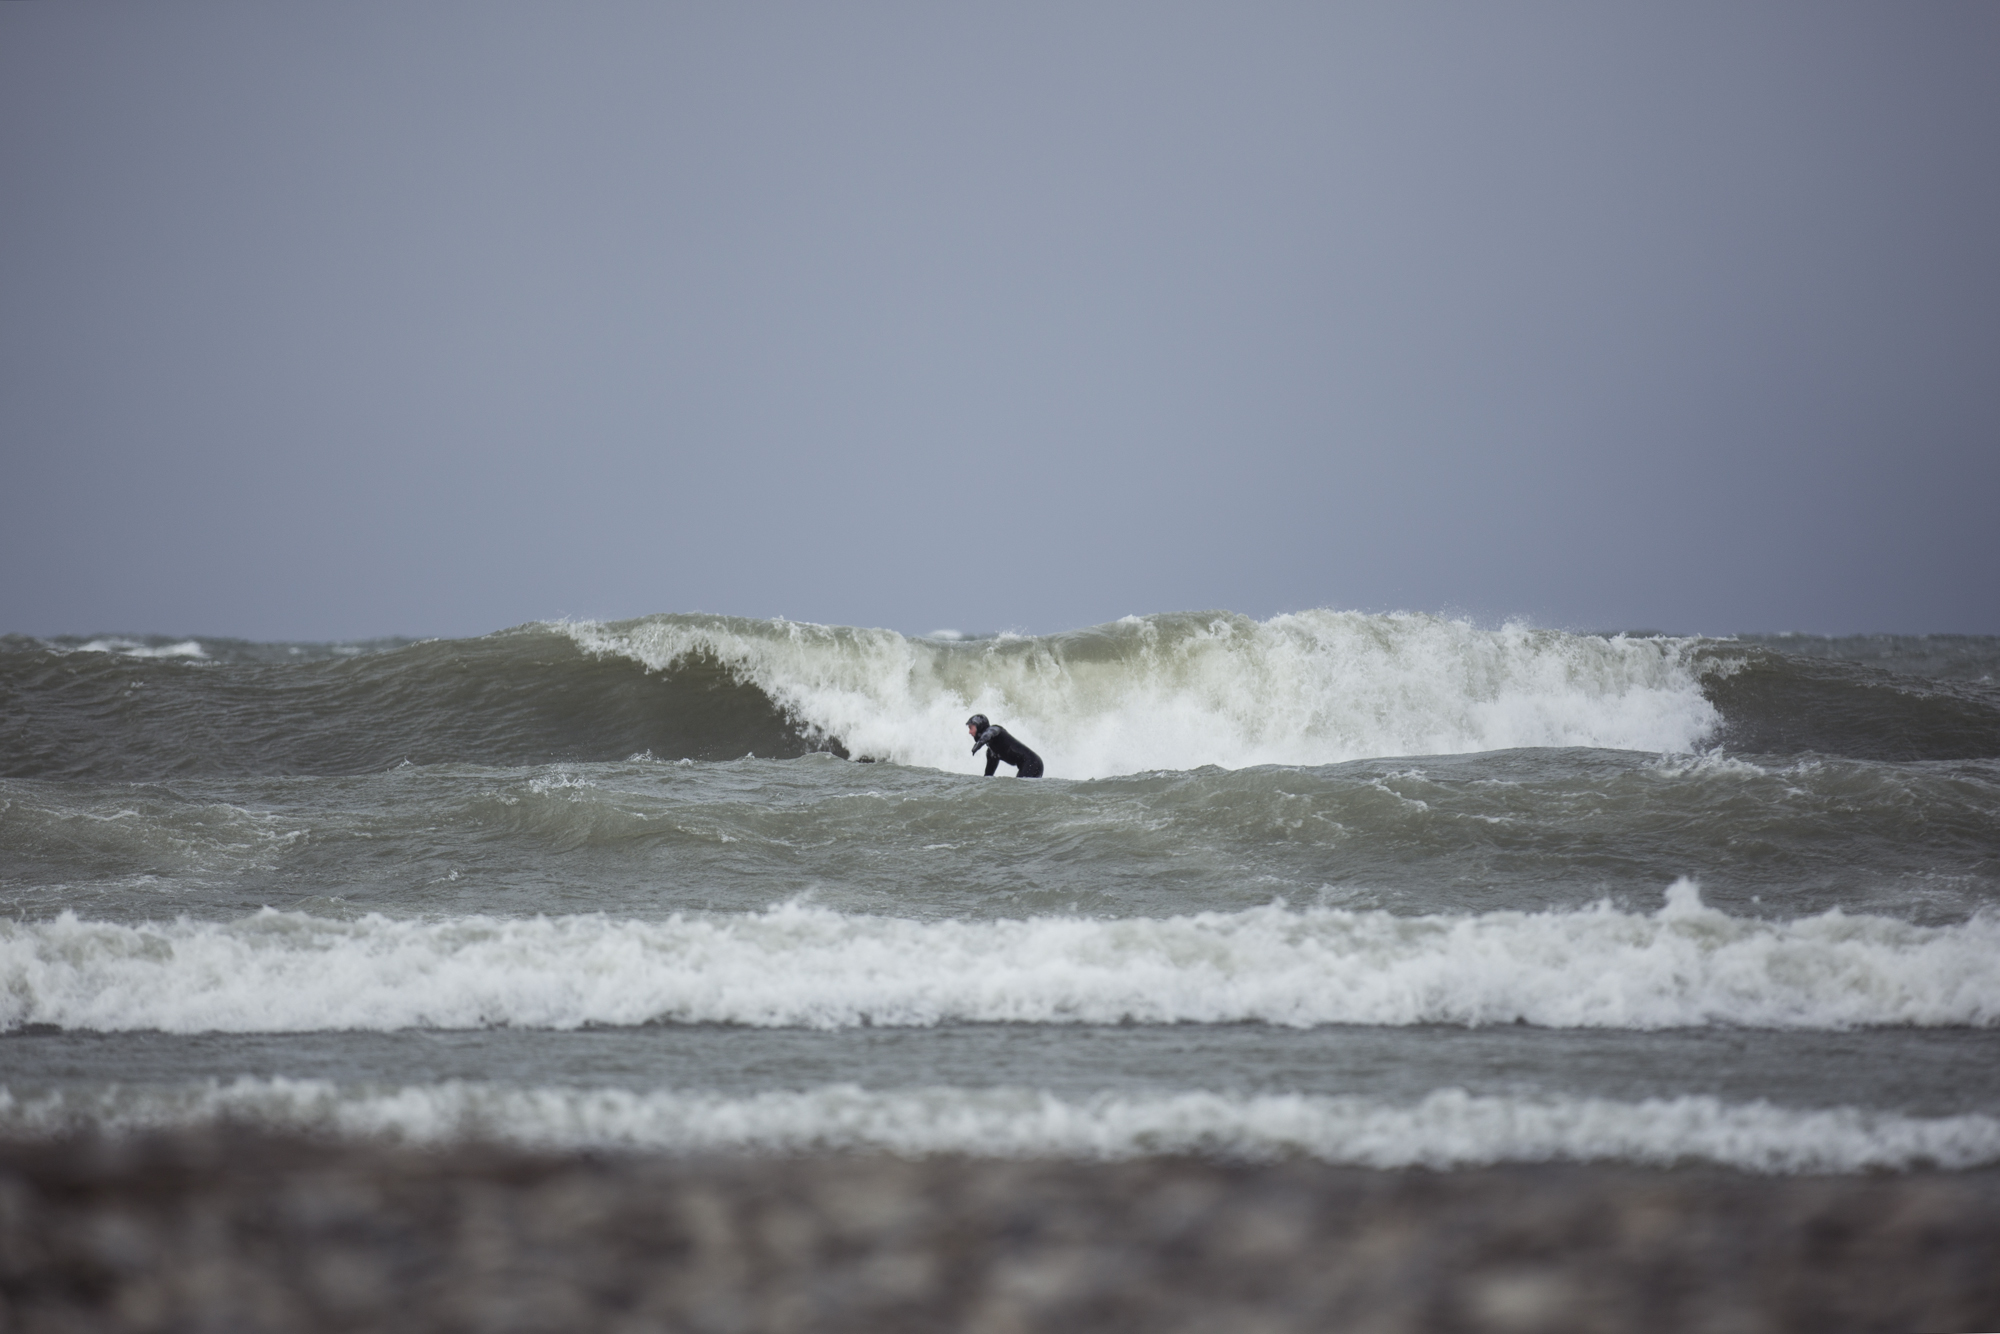 Surfing_the_Great_Lakes_Ontario_Alexandra_Coté_Durrer3.jpg